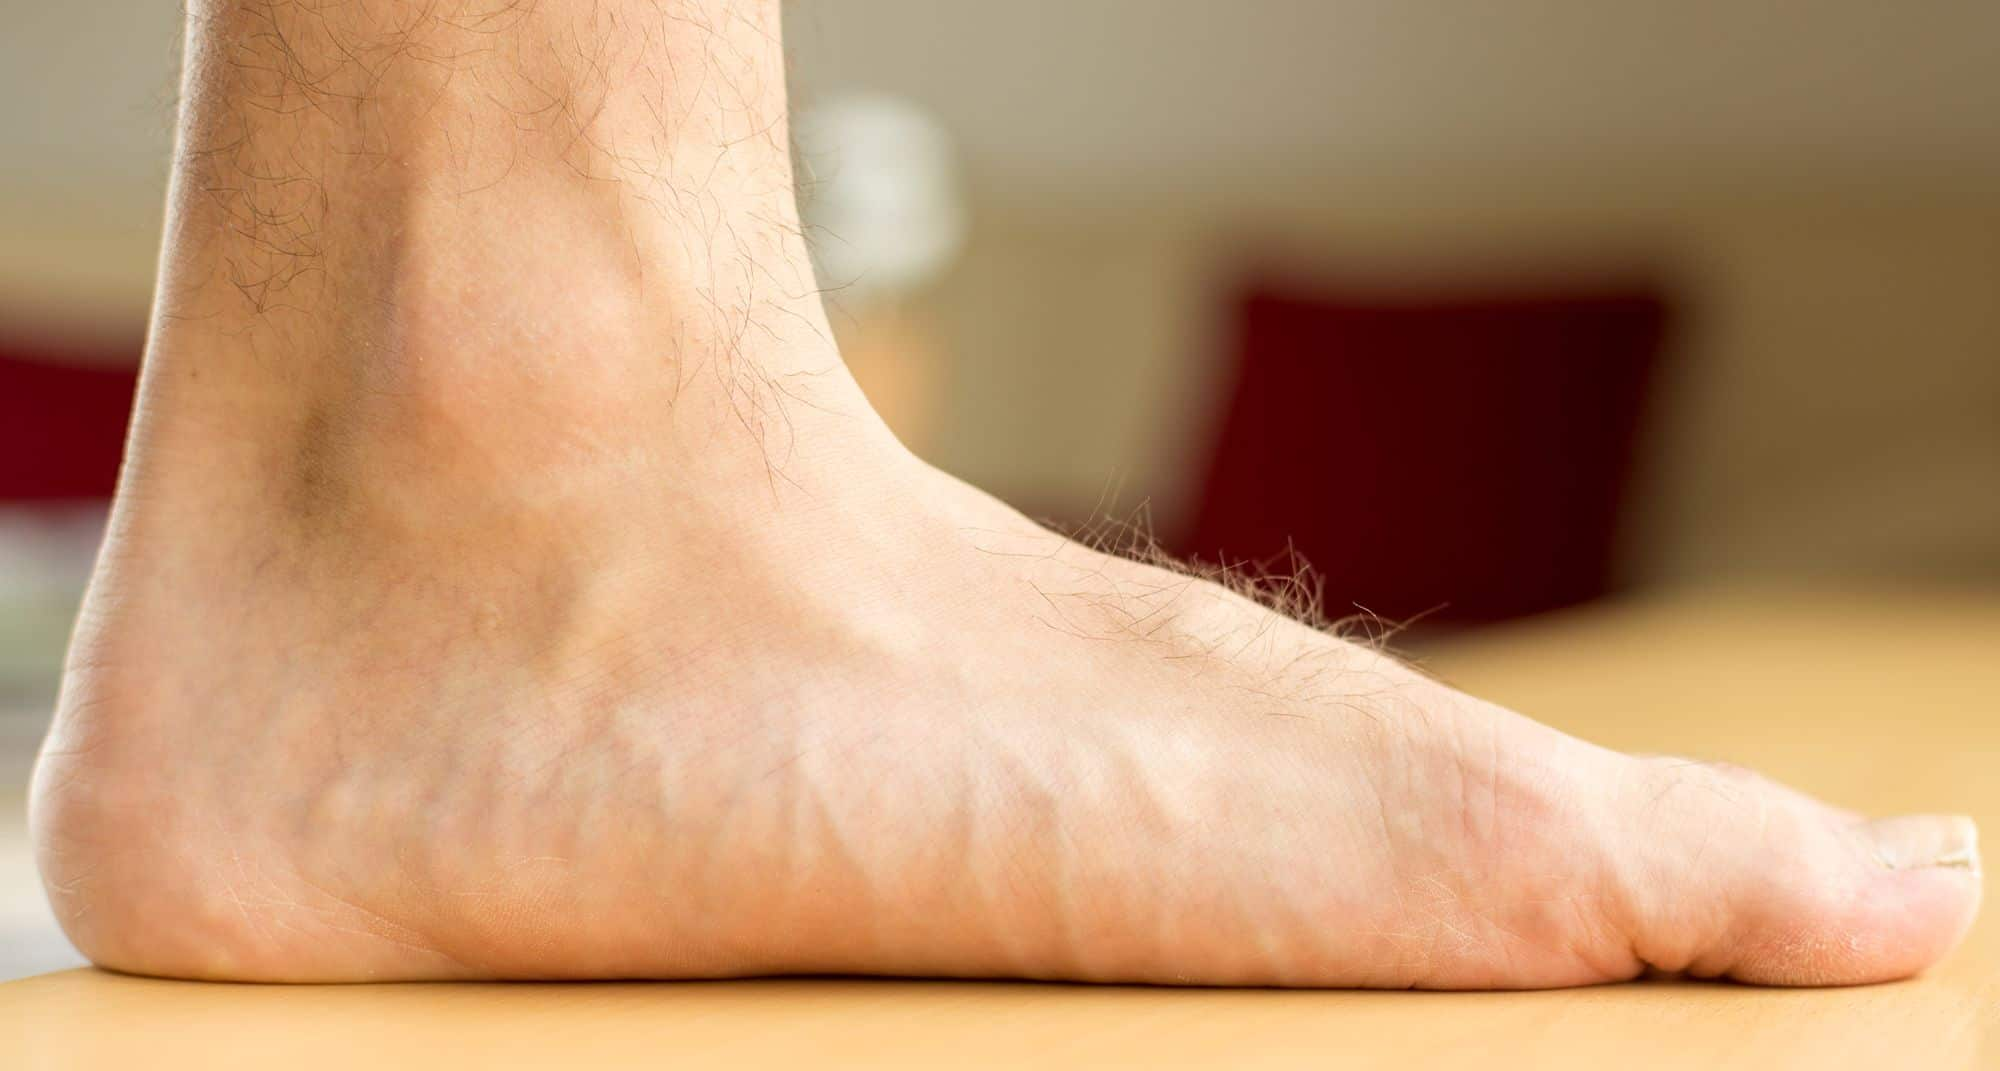 Pes Planus Causes Amp Treatment For Flat Feet Limbionics